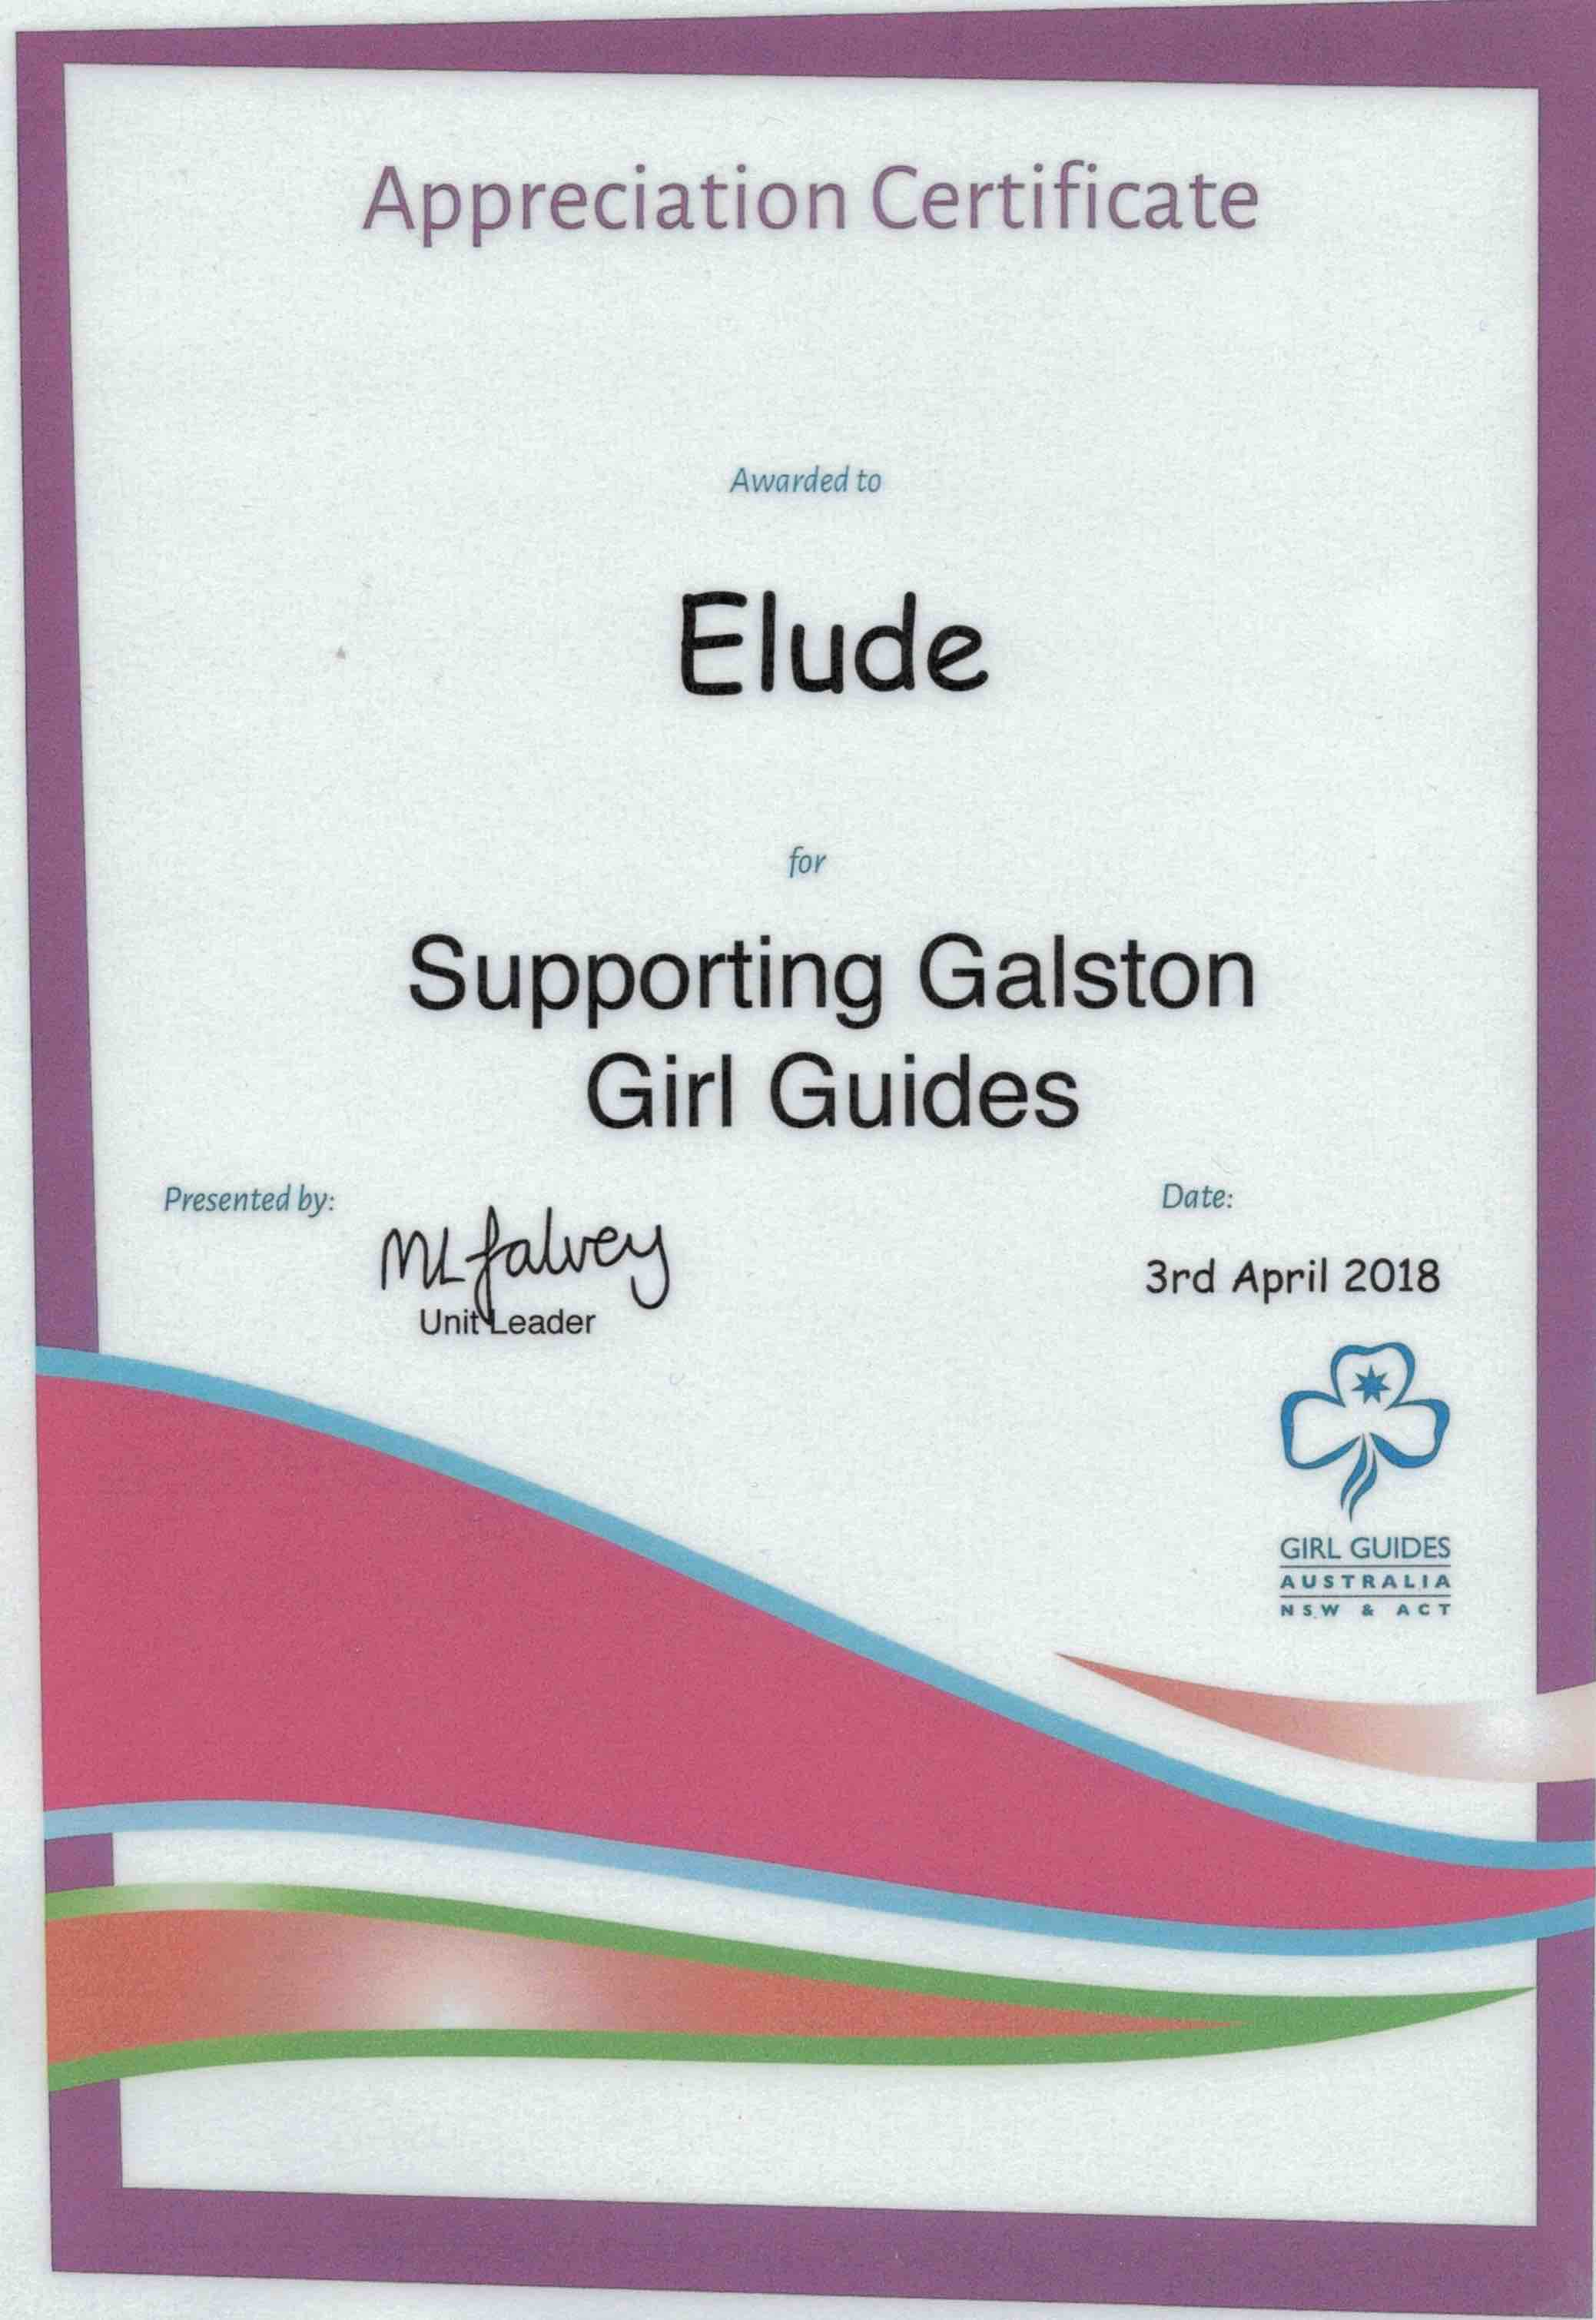 Appreciation Certificate from Galston Girl Guides